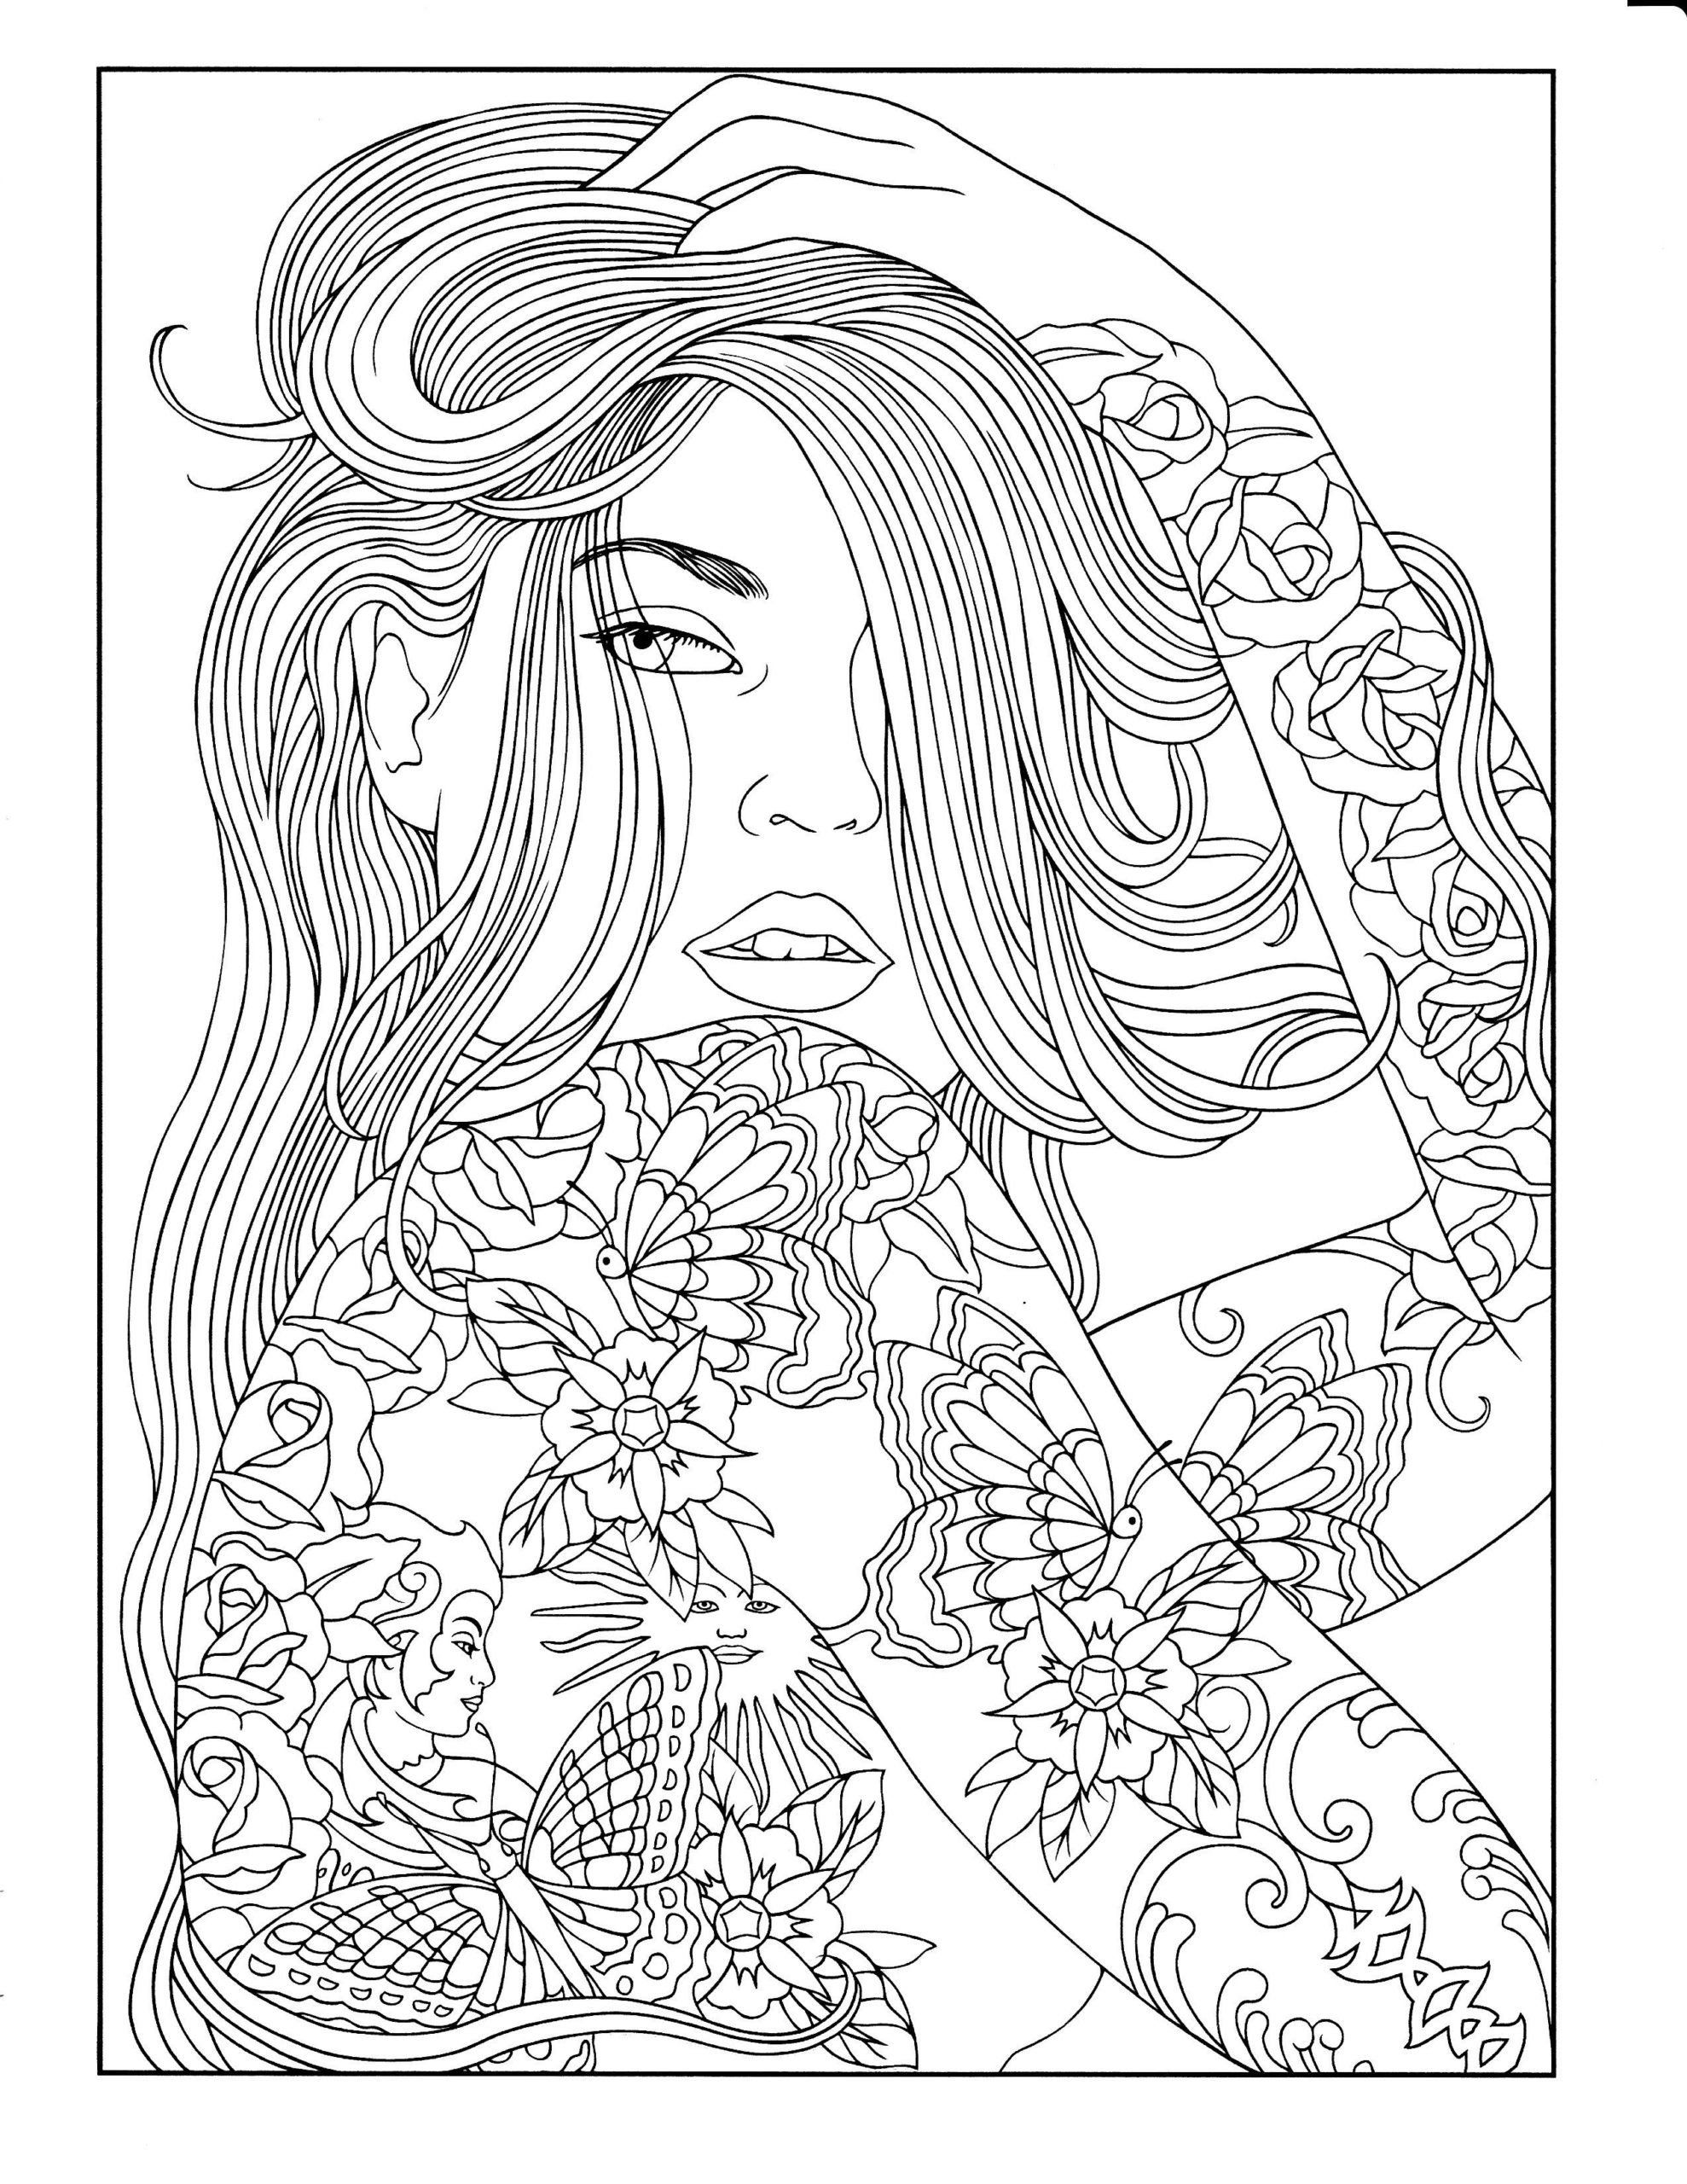 Coloring Books For Dementia Patients Coloring Pages Coloring Book Printable People For Toddl People Coloring Pages Animal Coloring Pages Mandala Coloring Pages